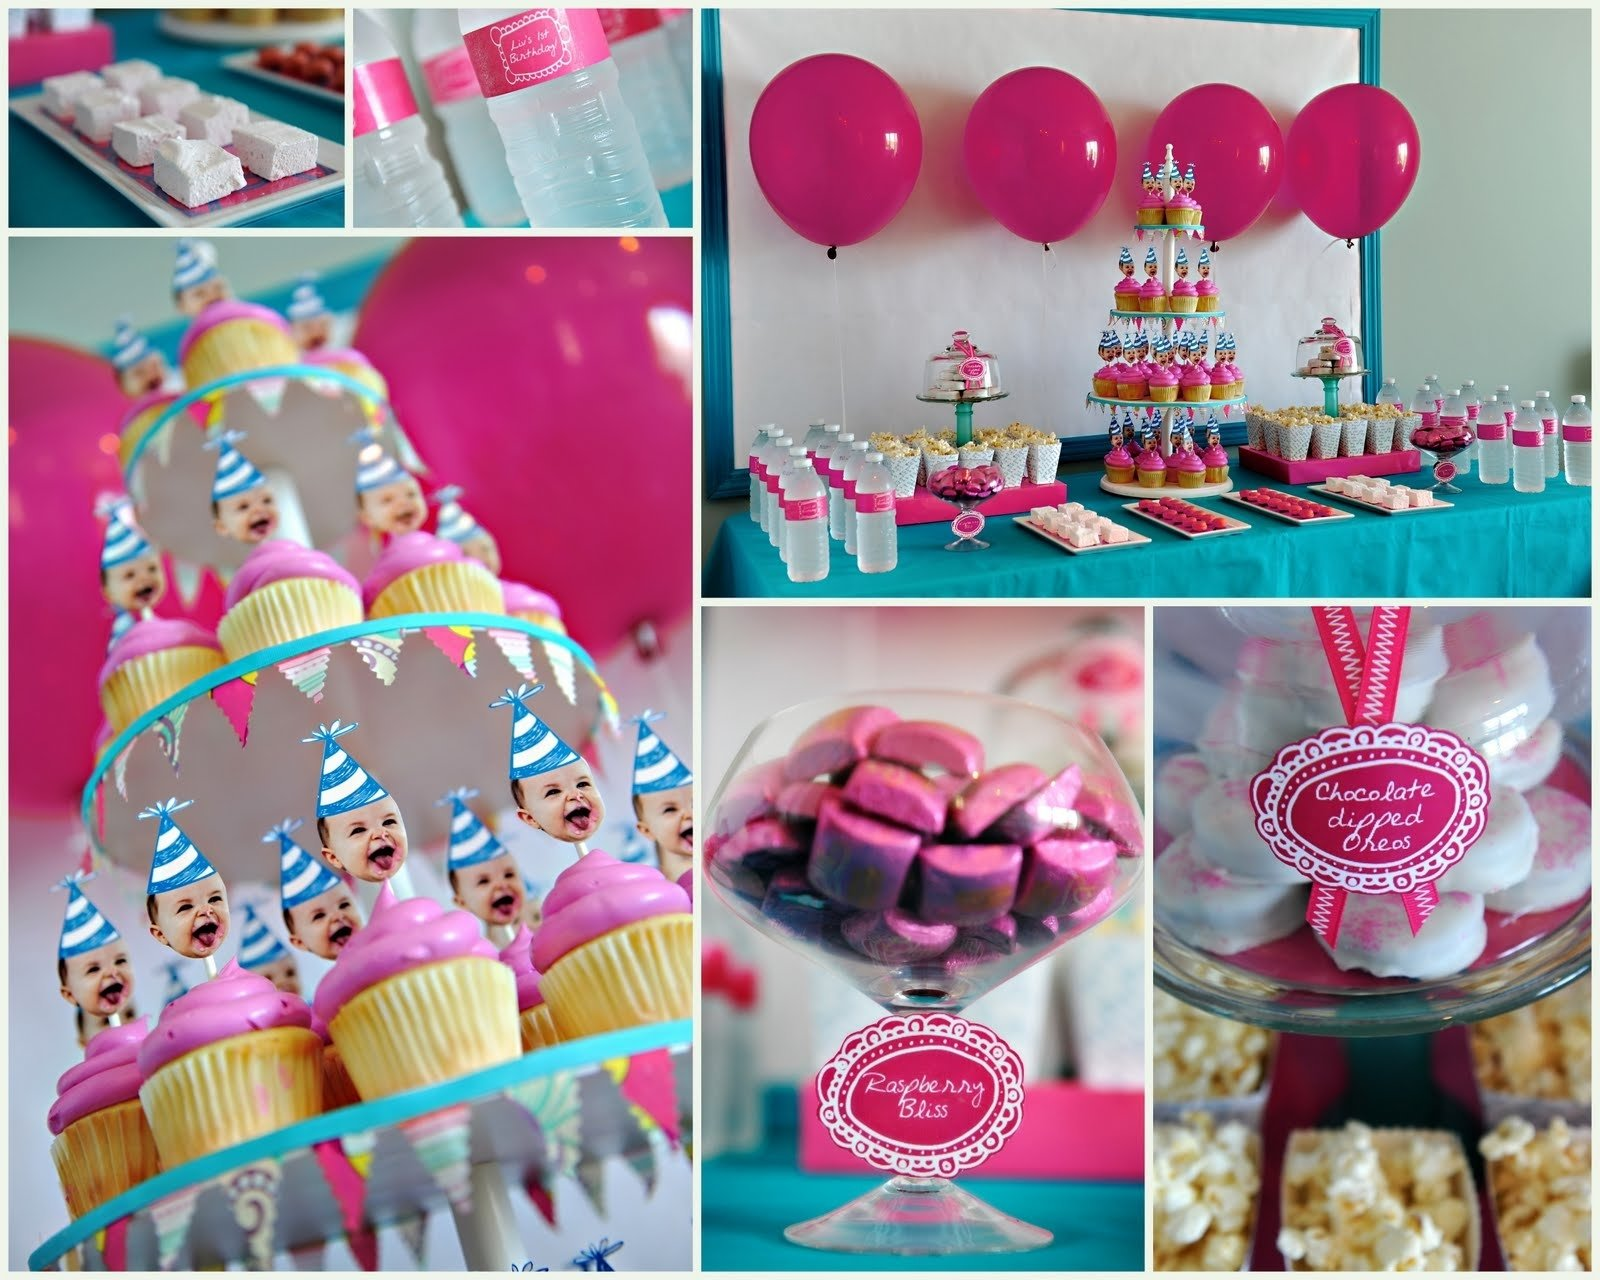 10 Great 1 Year Old Birthday Party Ideas themes birthday 1 year old birthday party activity ideas with 10 2020